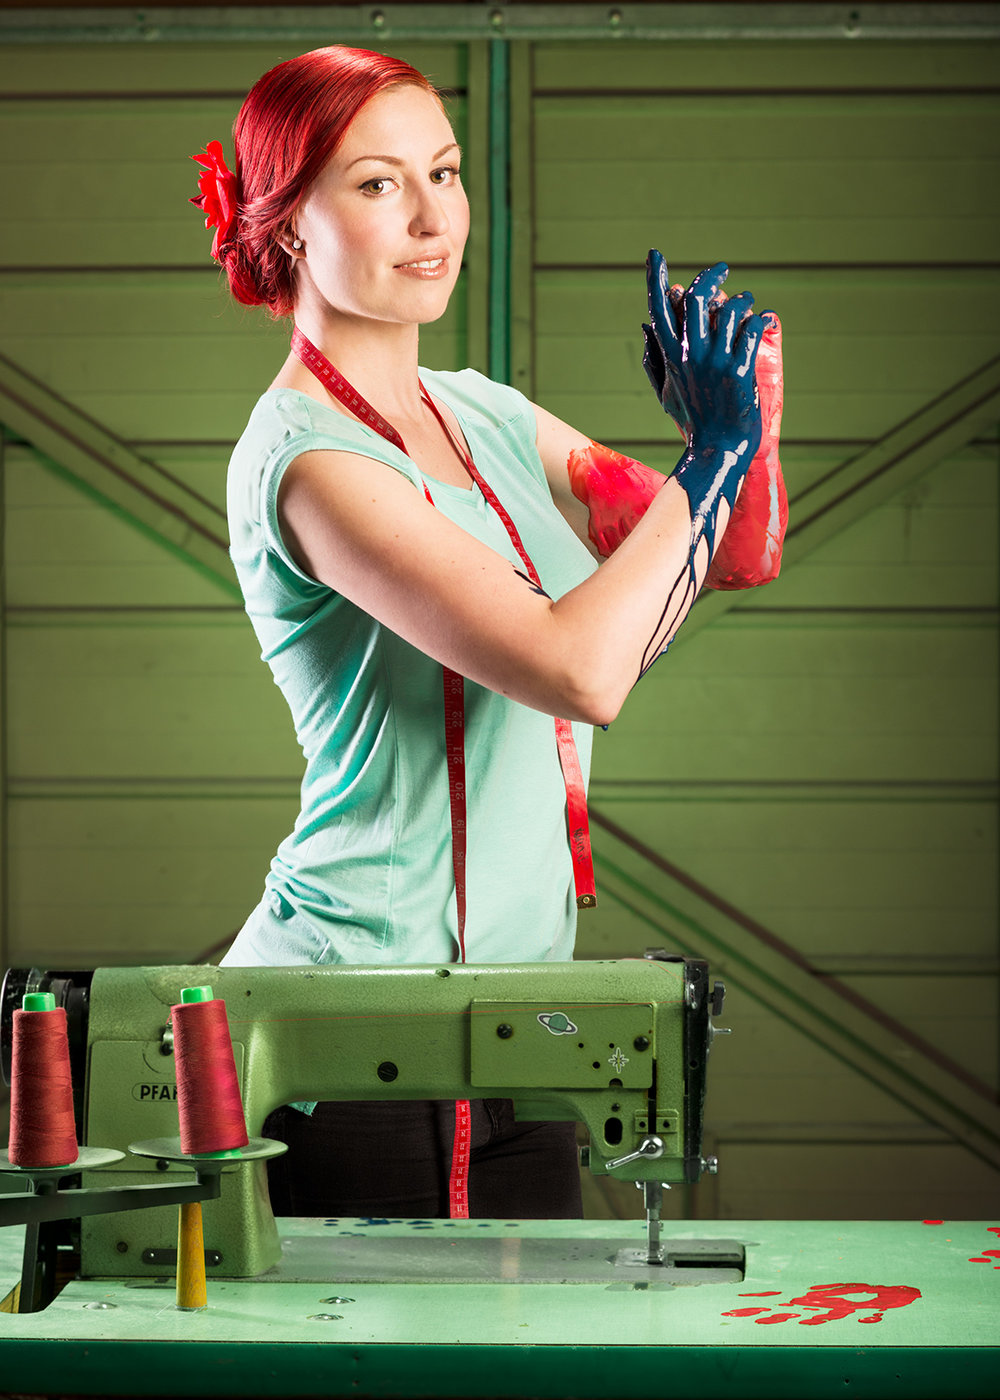 karin_green_red.jpg